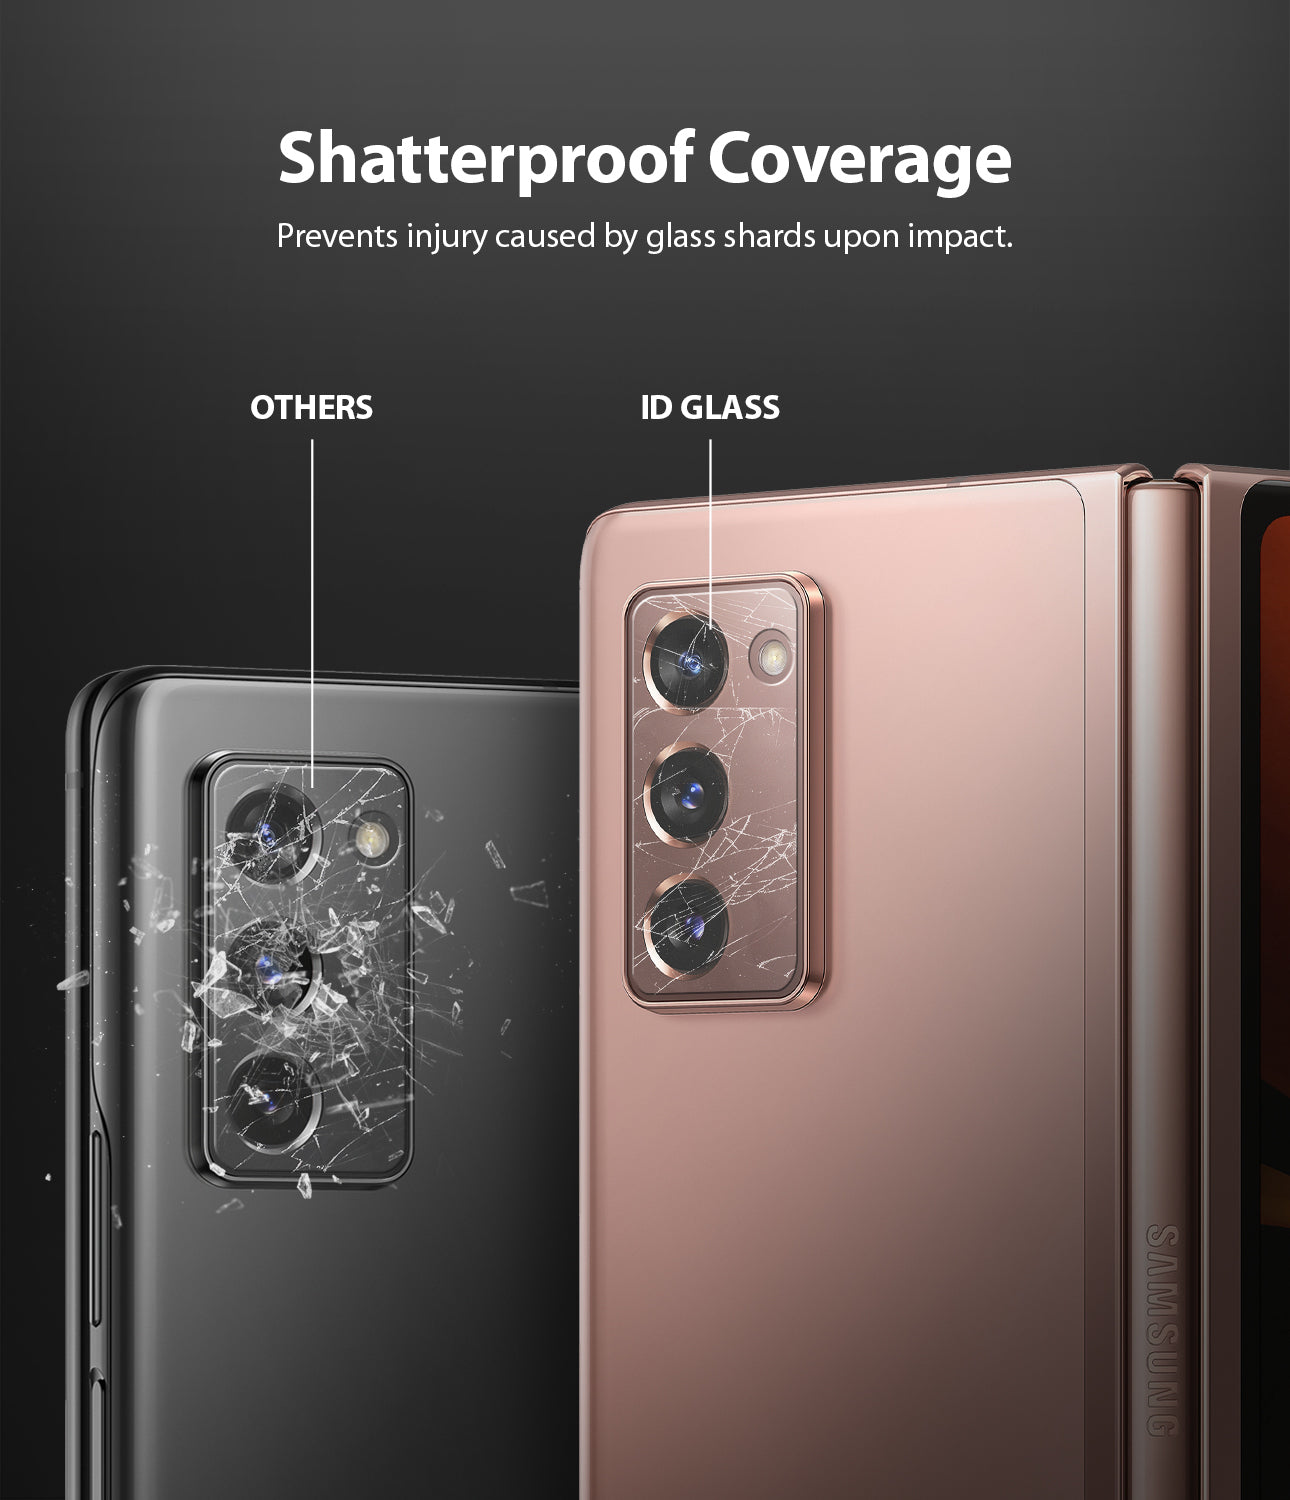 shatterproof coverage